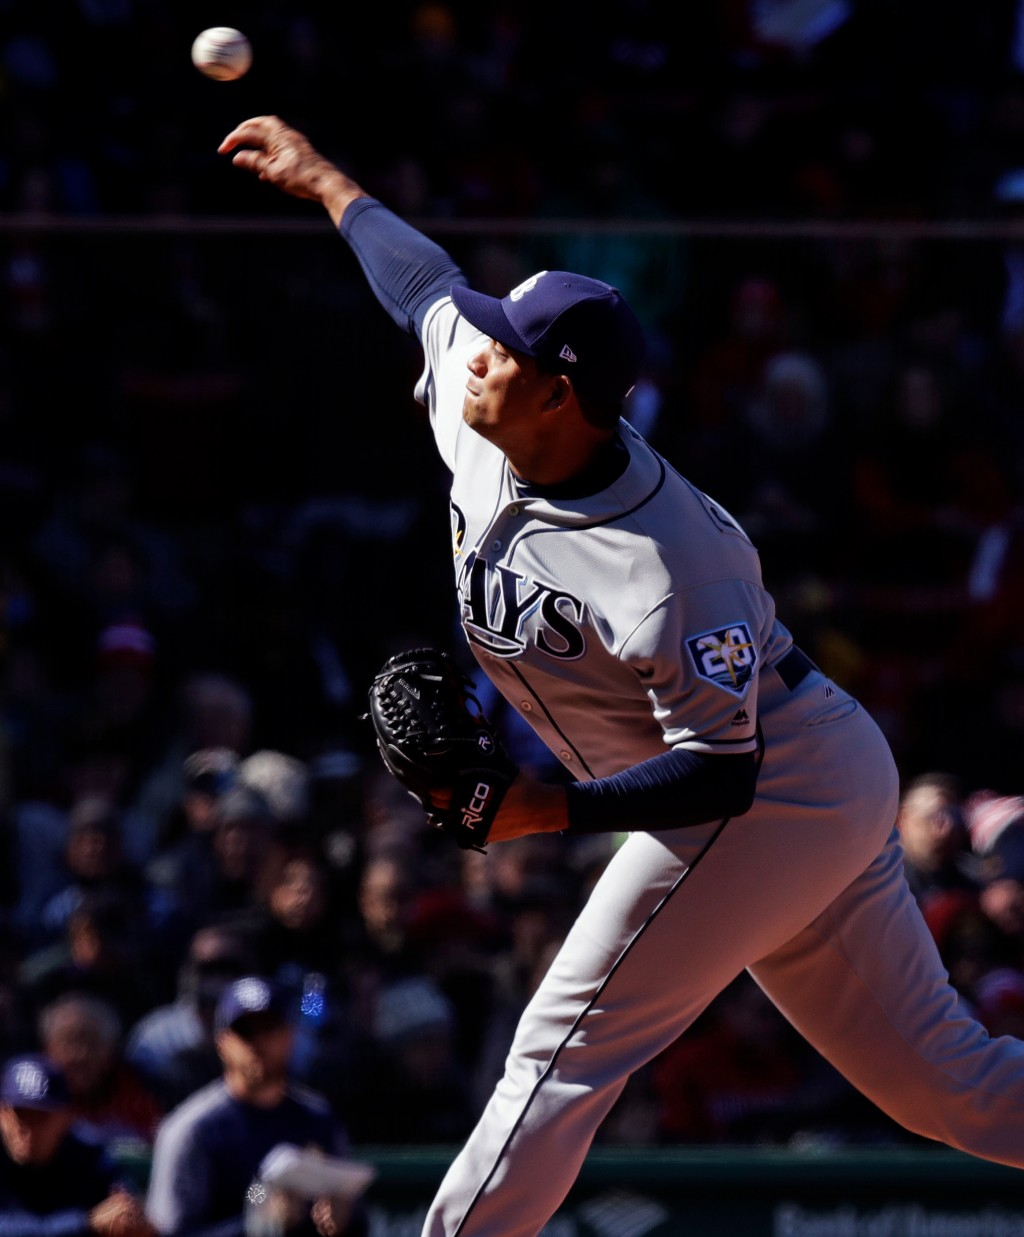 Tampa Bay Rays starting pitcher Yonny Chirinos delivers during the third inning of a baseball game against the Boston Red Sox at Fenway Park in Boston...